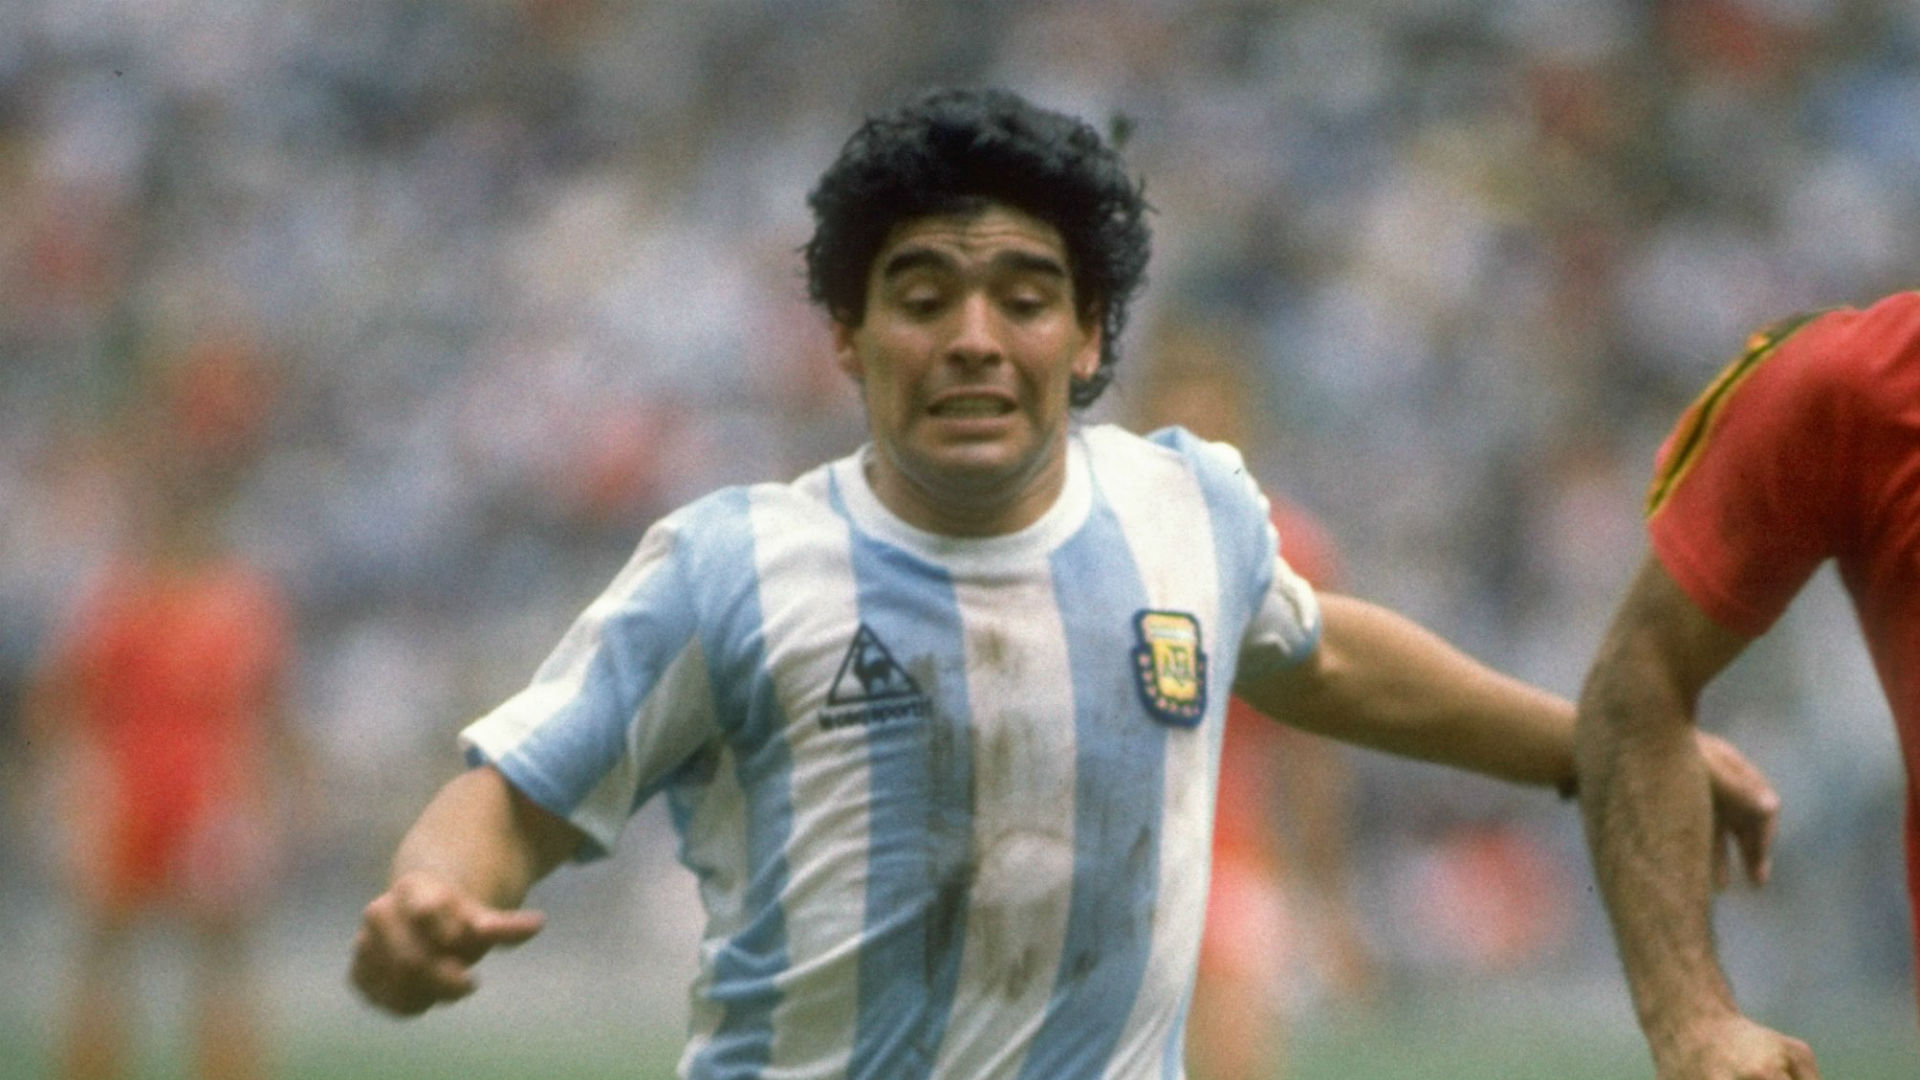 Ronaldo's Brazil, Henry at Arsenal and Maradona for Argentina – Iconic players in iconic kits